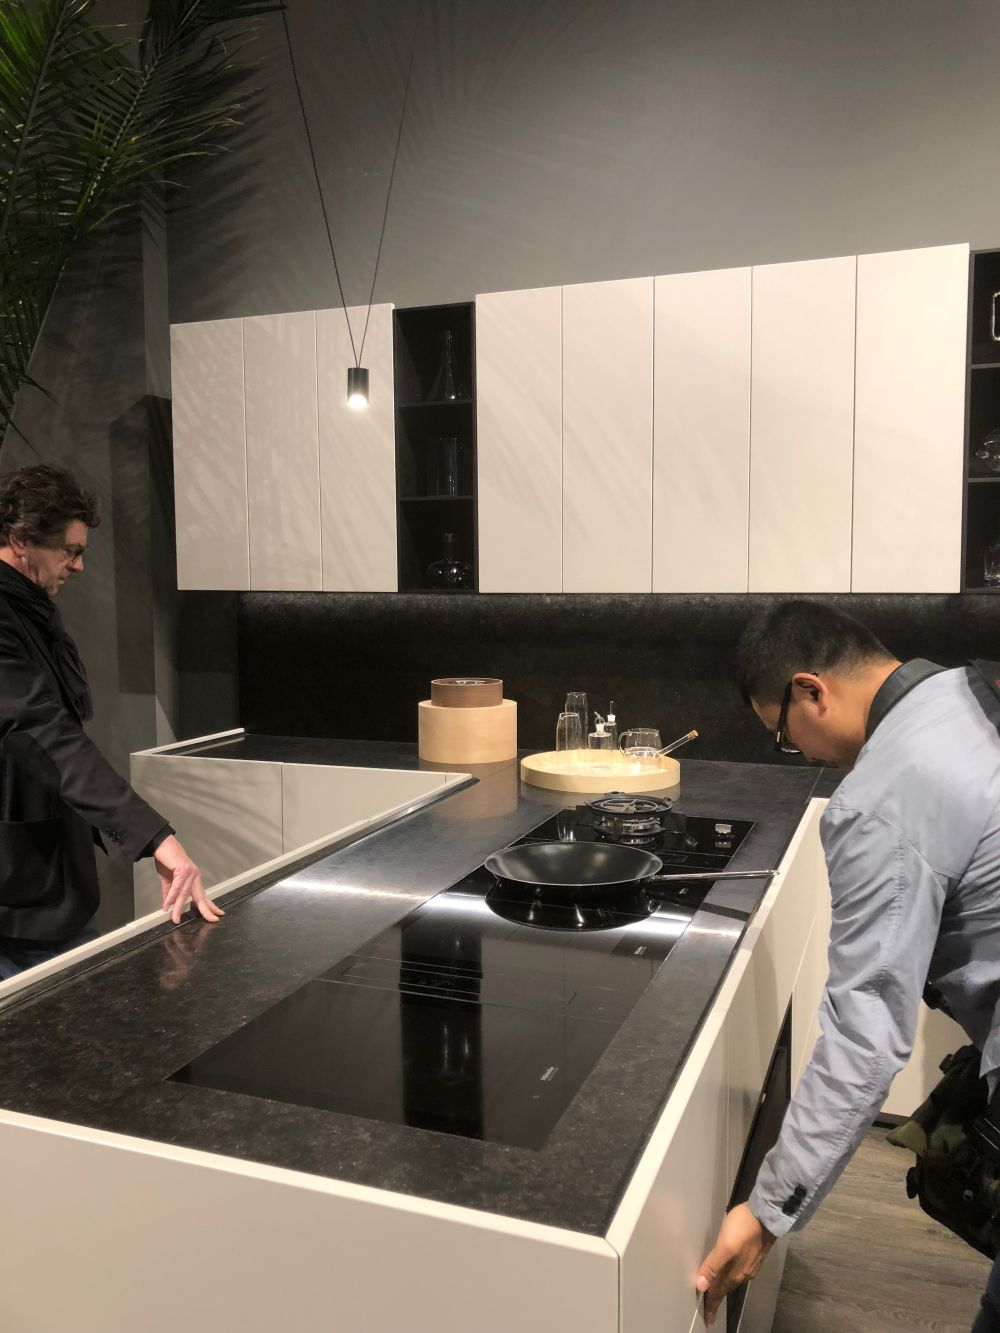 La Cucina Kitchen Gallery Eurocucina 2018 Shows New Trends For Modern And Luxury Kitchens